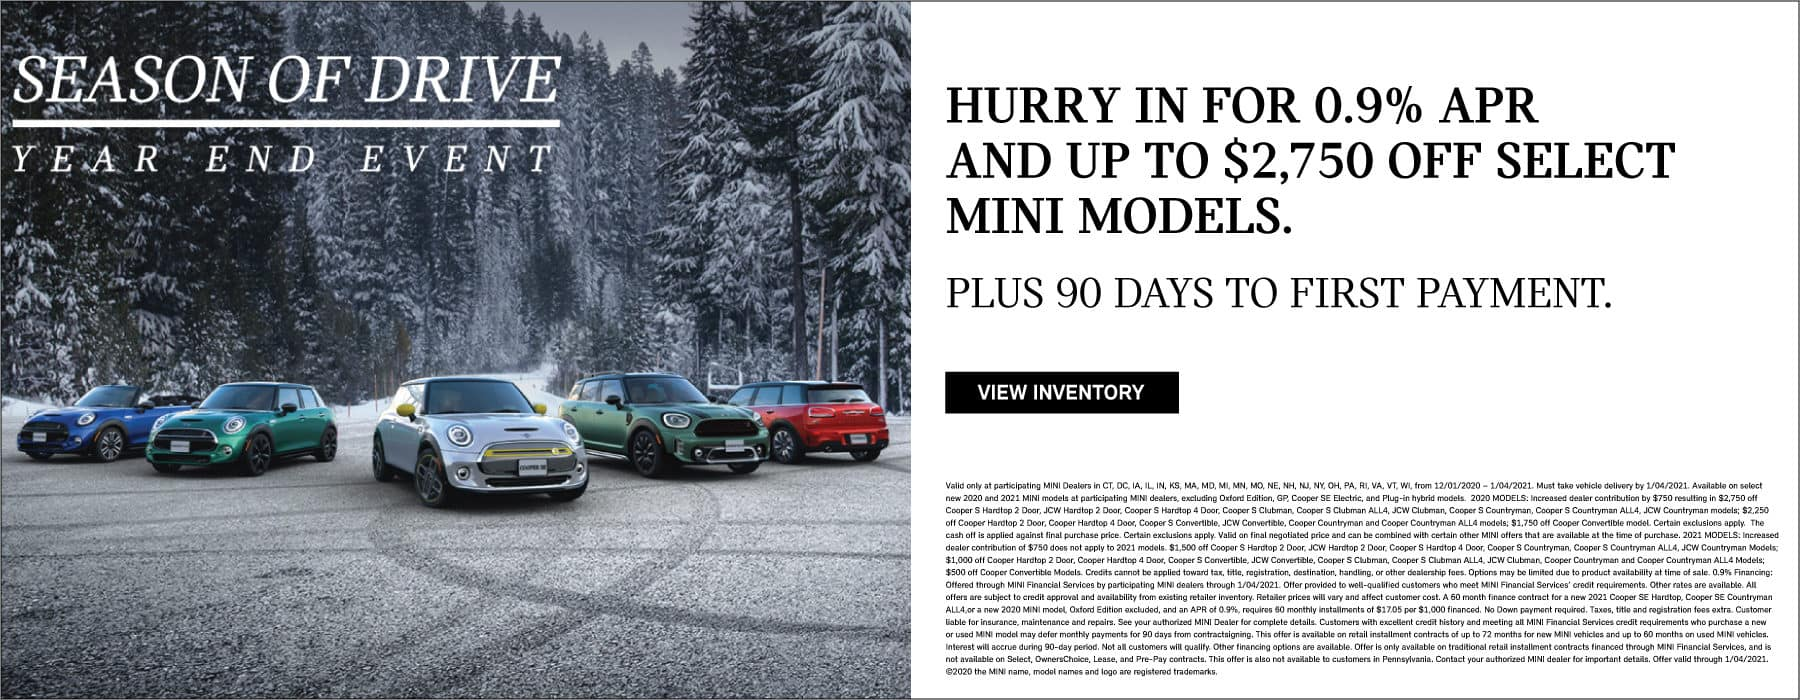 Hurry in for 0.9% APR and up to $2,750 off select MINI Models.